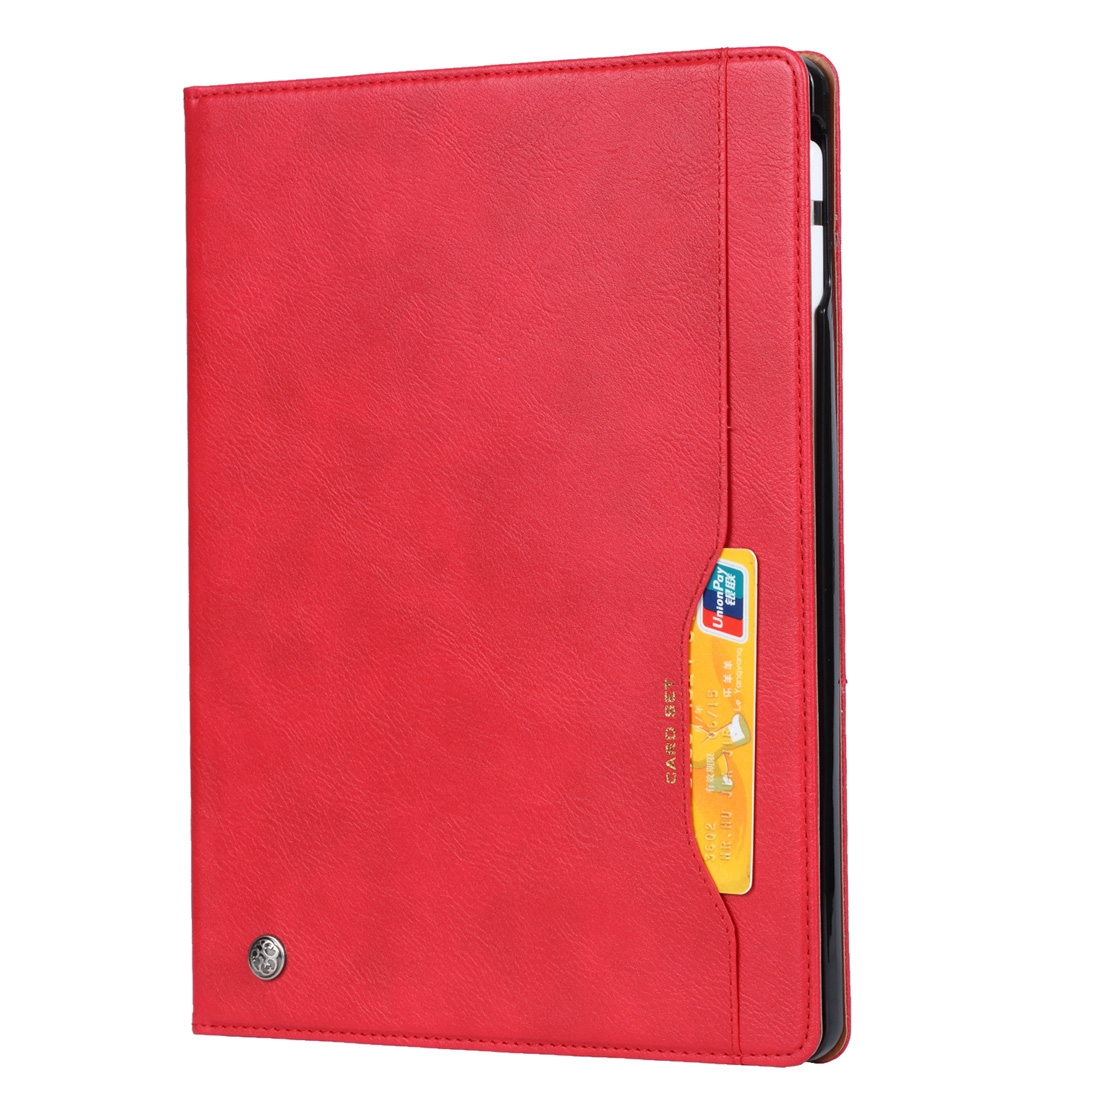 Textured Leather iPad Pro 12.9 Case 2018, w/Frame, Holder, Slim Profile & Pen Holder (Red)